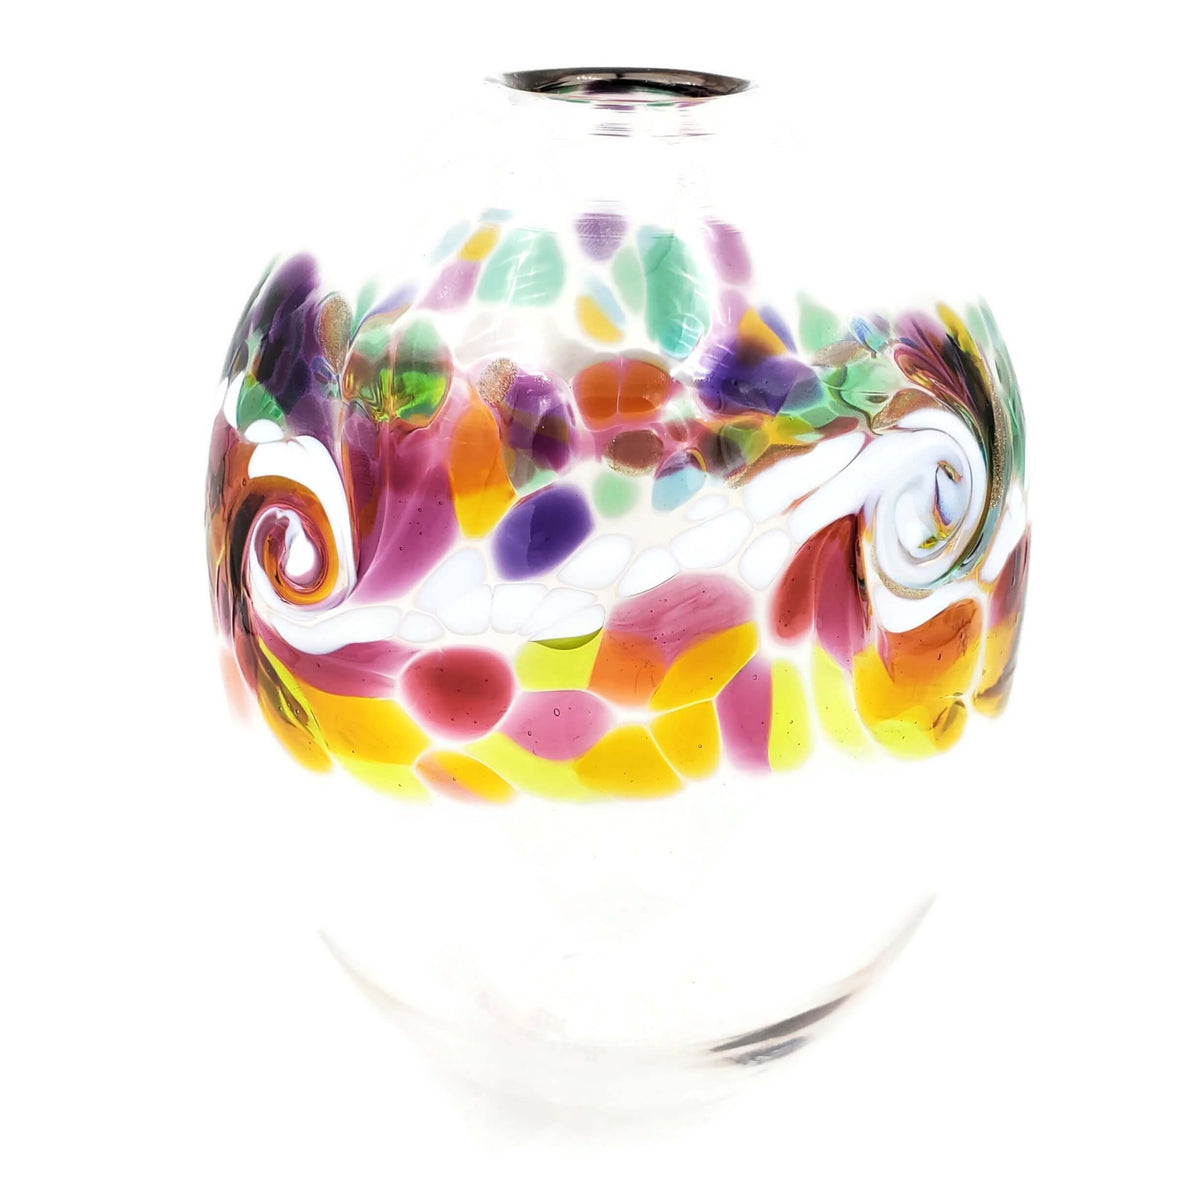 Hand-blown, clear glass oval shaped vase  with  wave-like white swirl and accent colors of  purple, pink, yellow, green, and blue..